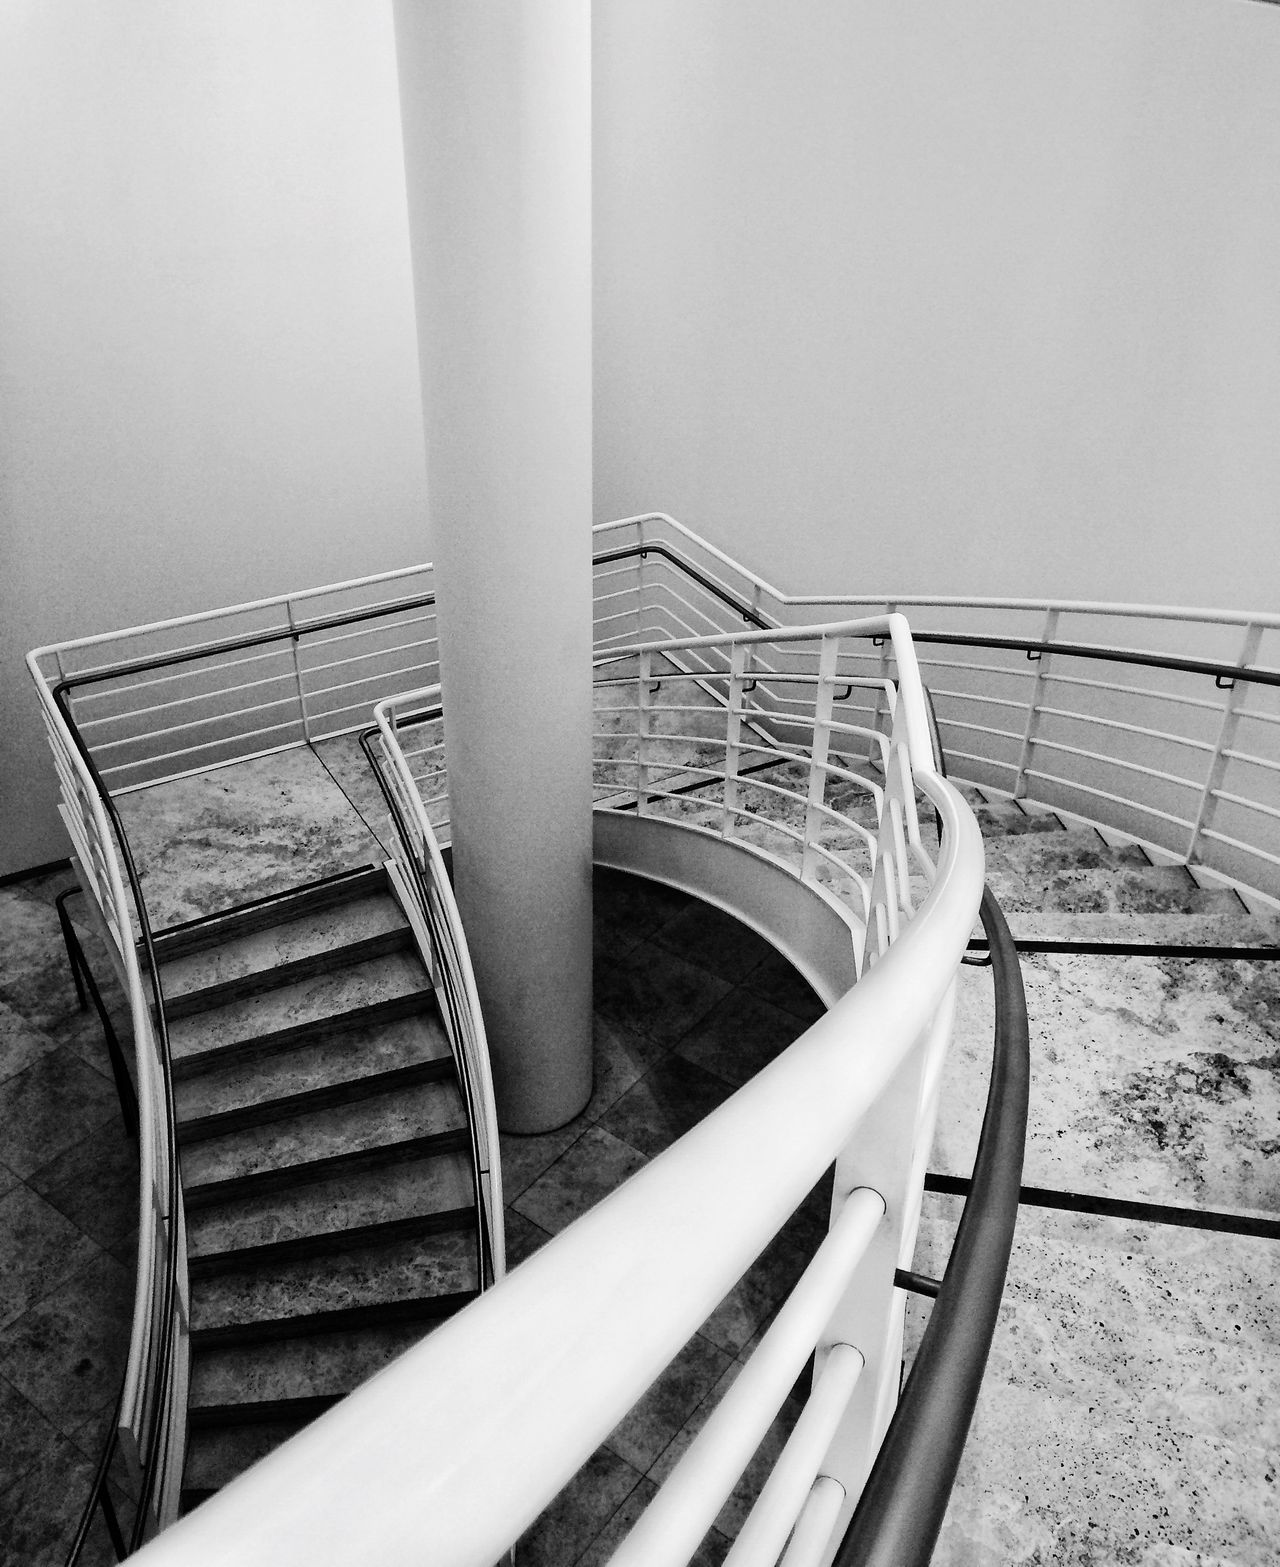 Architecture Architectural Detail Blackandwhite Monochrome Stairways NEM Architecture Blackandwhite Photography Urban Geometry Cityscapes Black And White